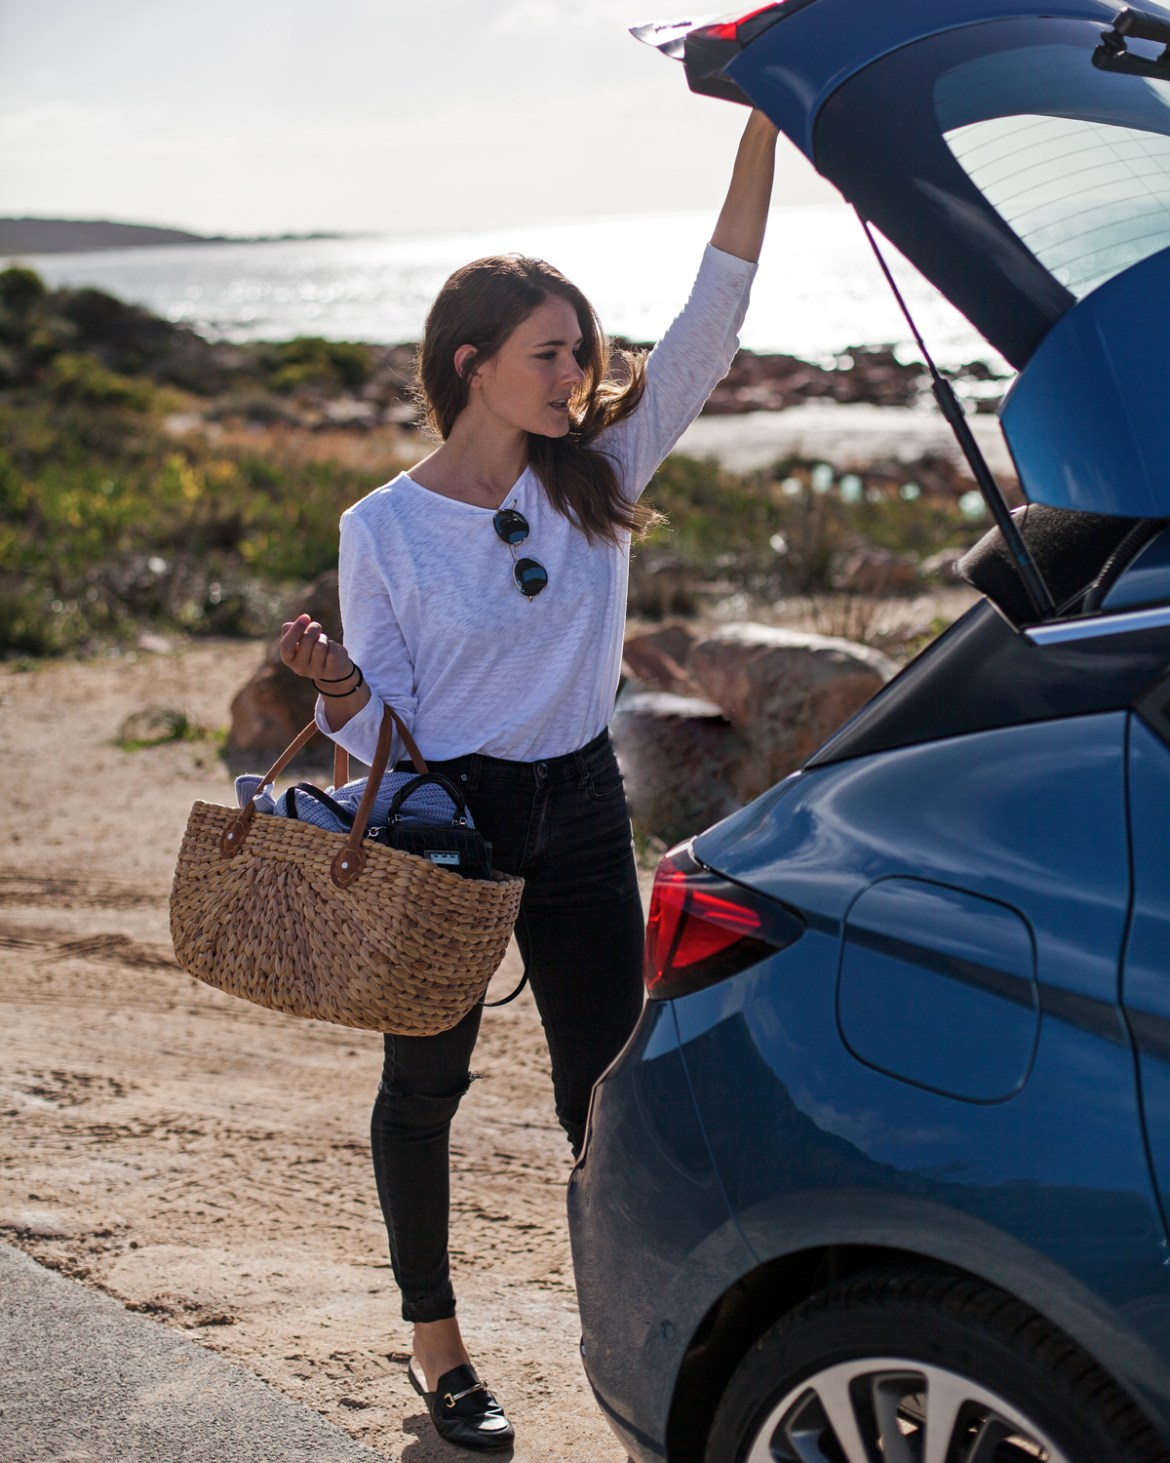 Holden Astra road trip with travel blogger Jenelle from Inspiring Wit